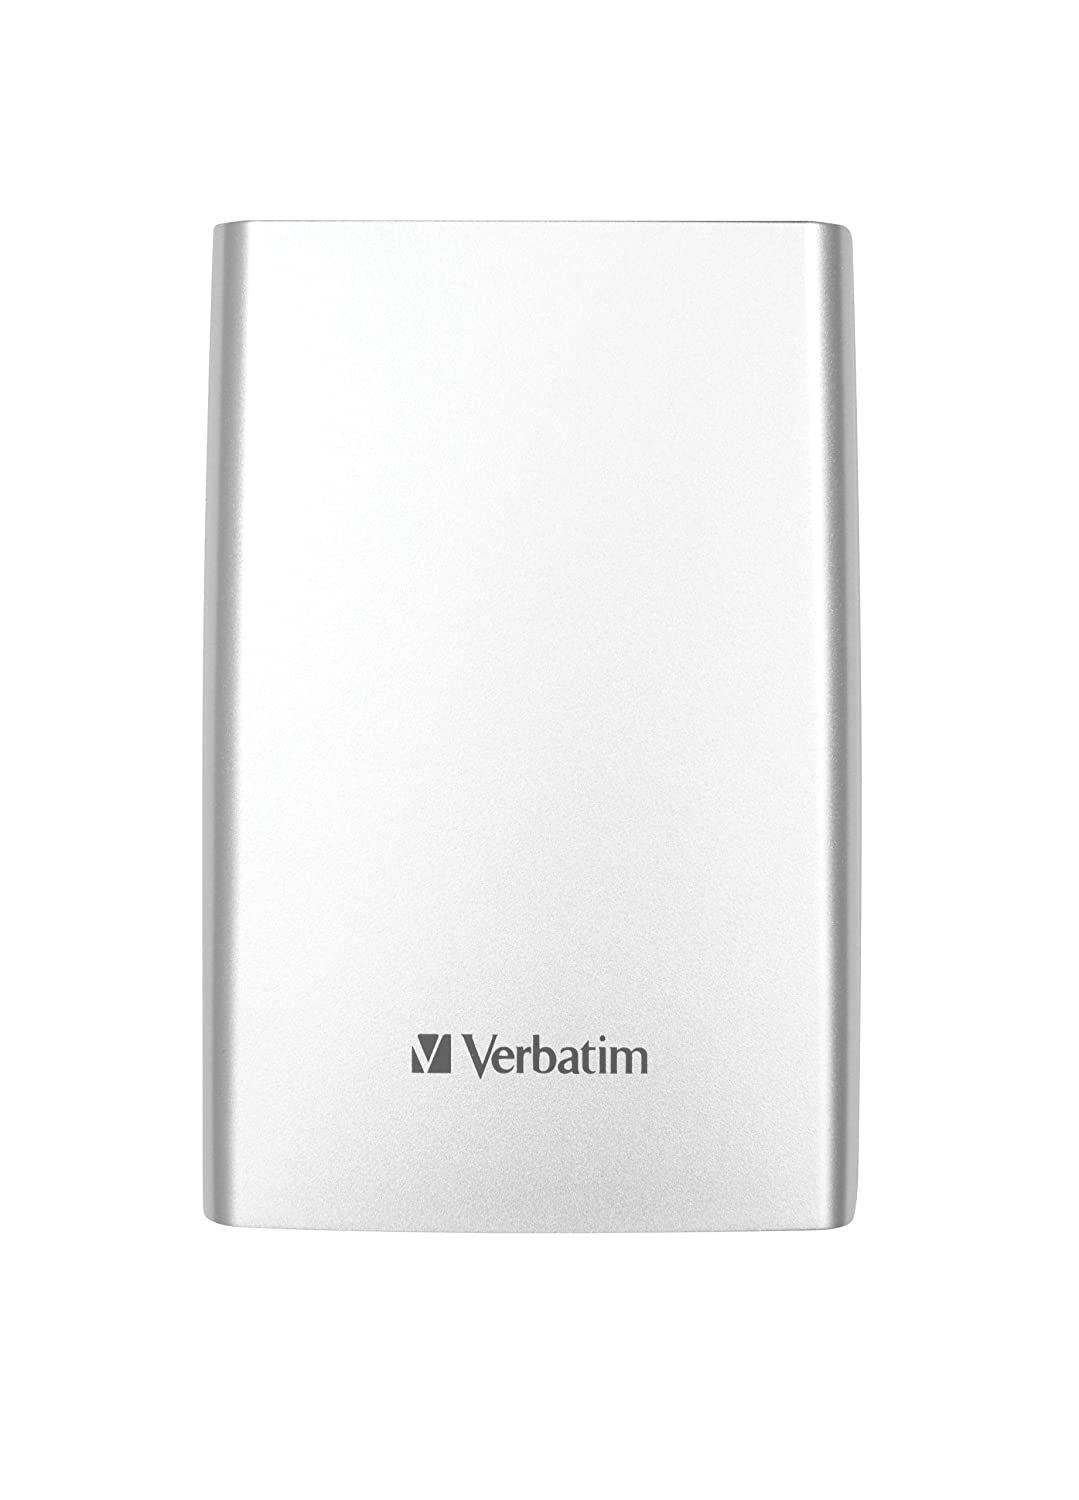 Verbatim 53021 - Disco duro externo de 500 GB (2,5), color gris